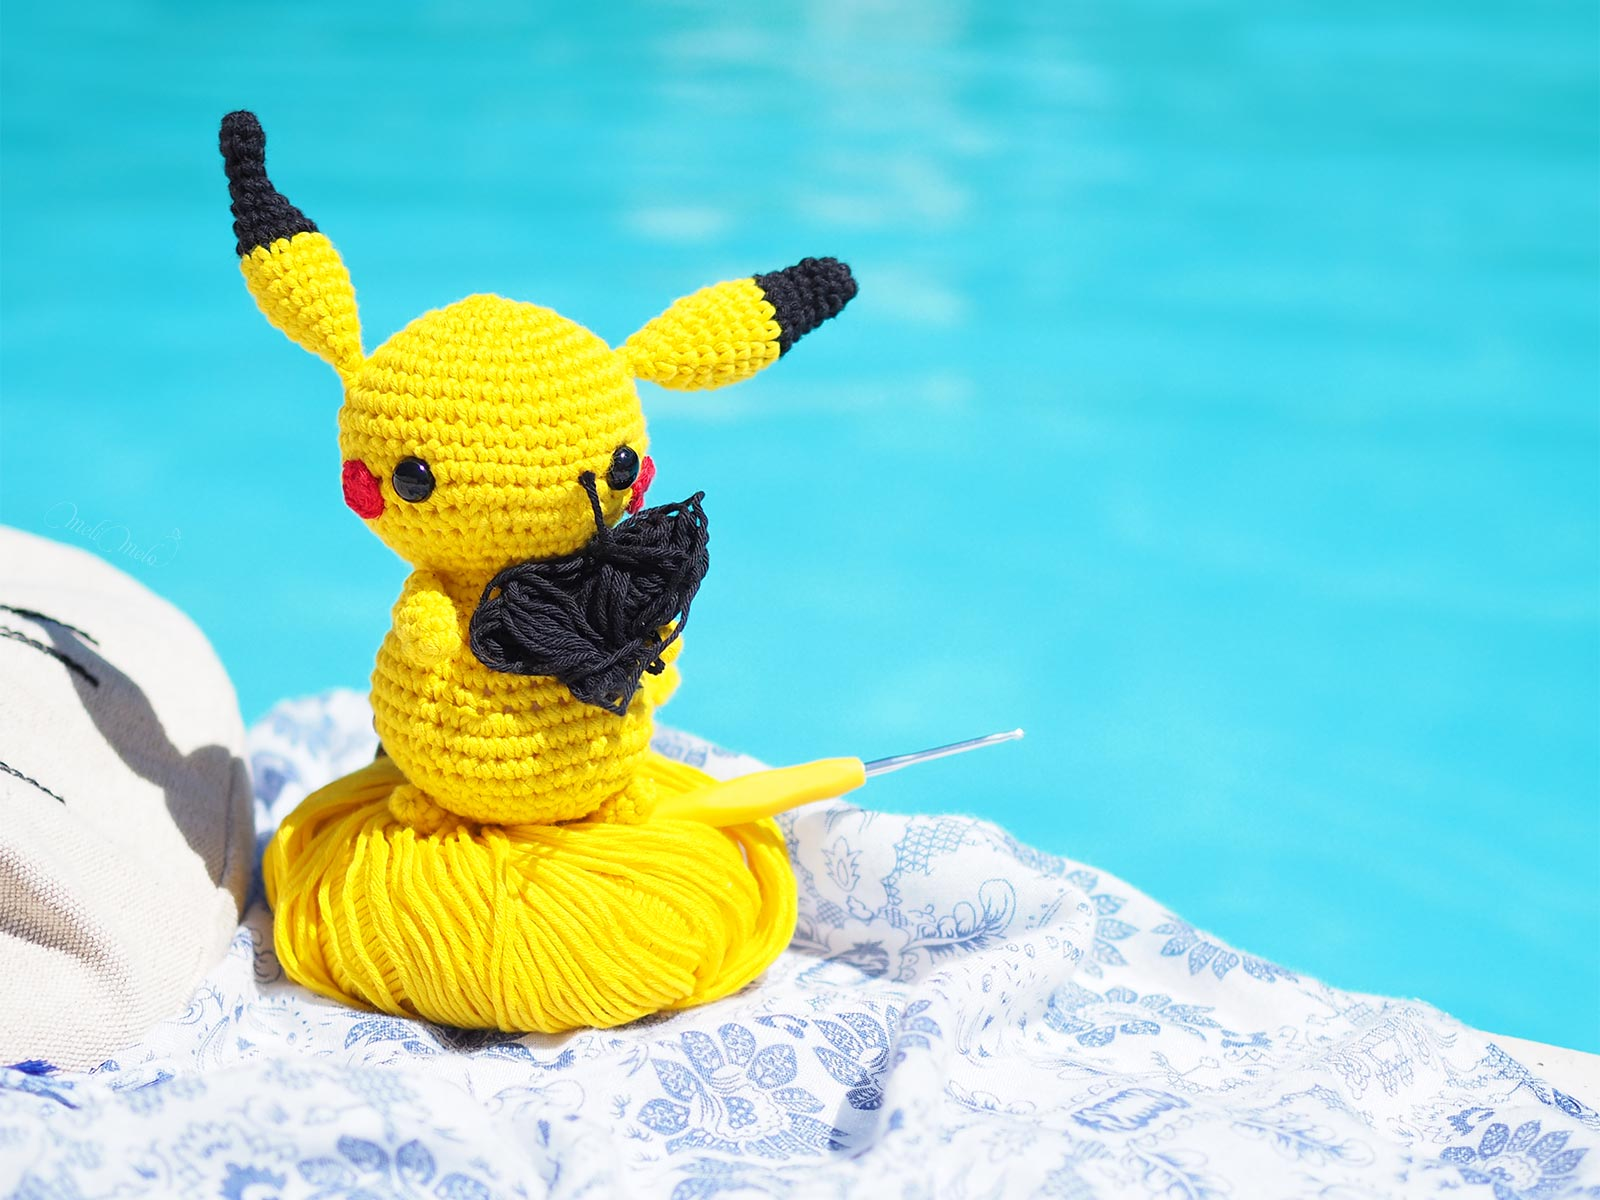 crochet-pikachu-encours-piscine-summer-laboutiquedemelimelo-cotton-pima-weareknitters